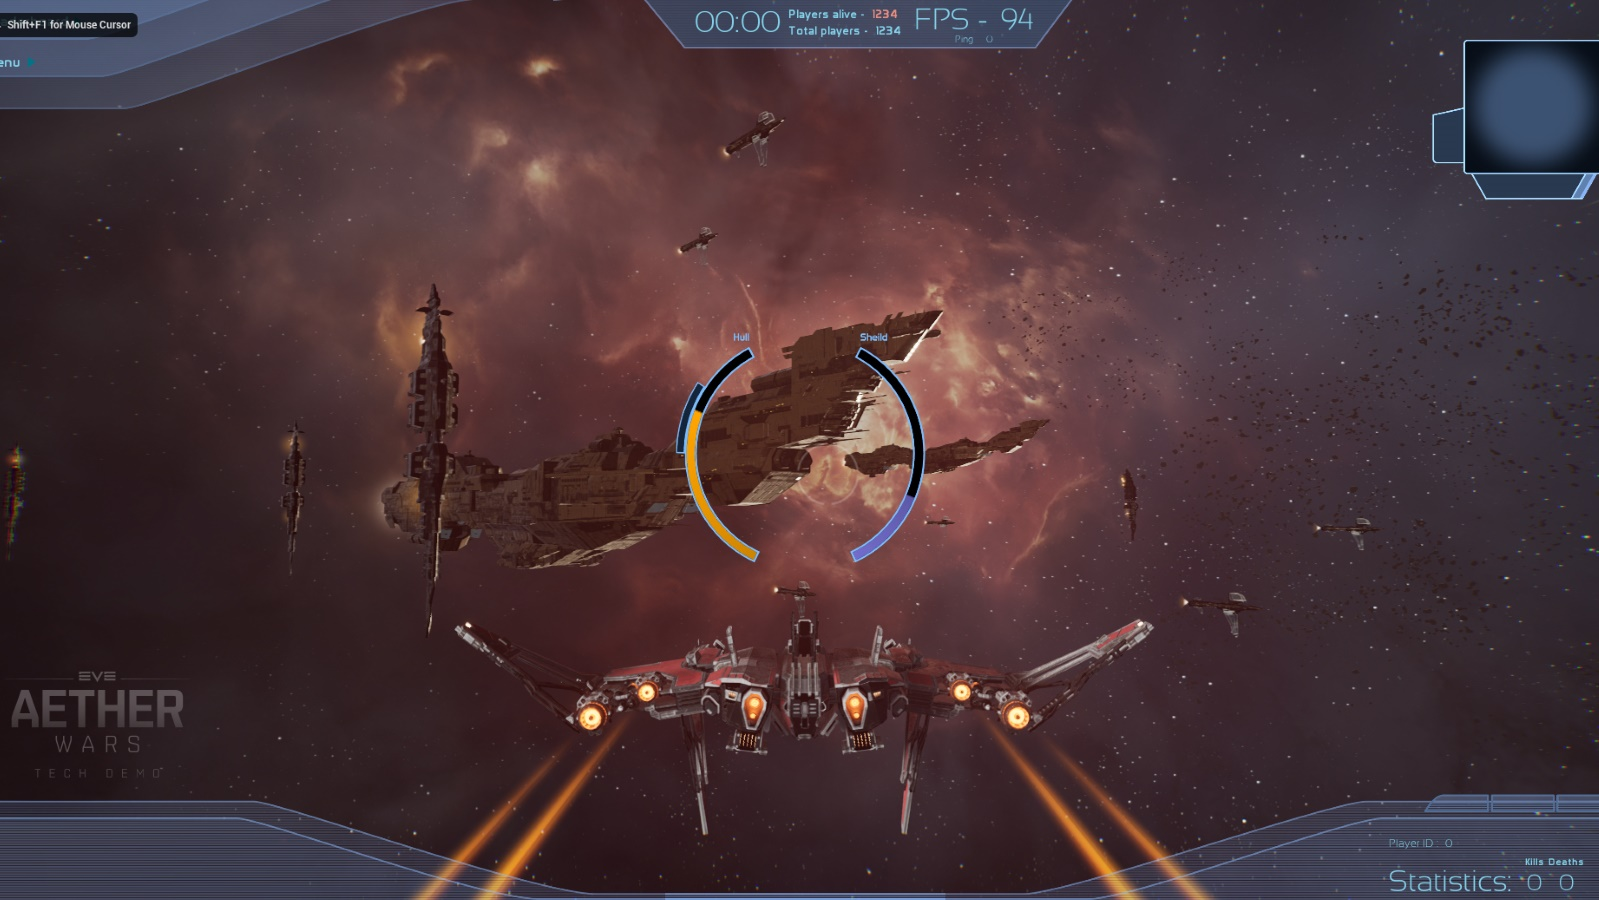 Aether Wars is a one-off 10,000 player Eve deathmatch | Rock